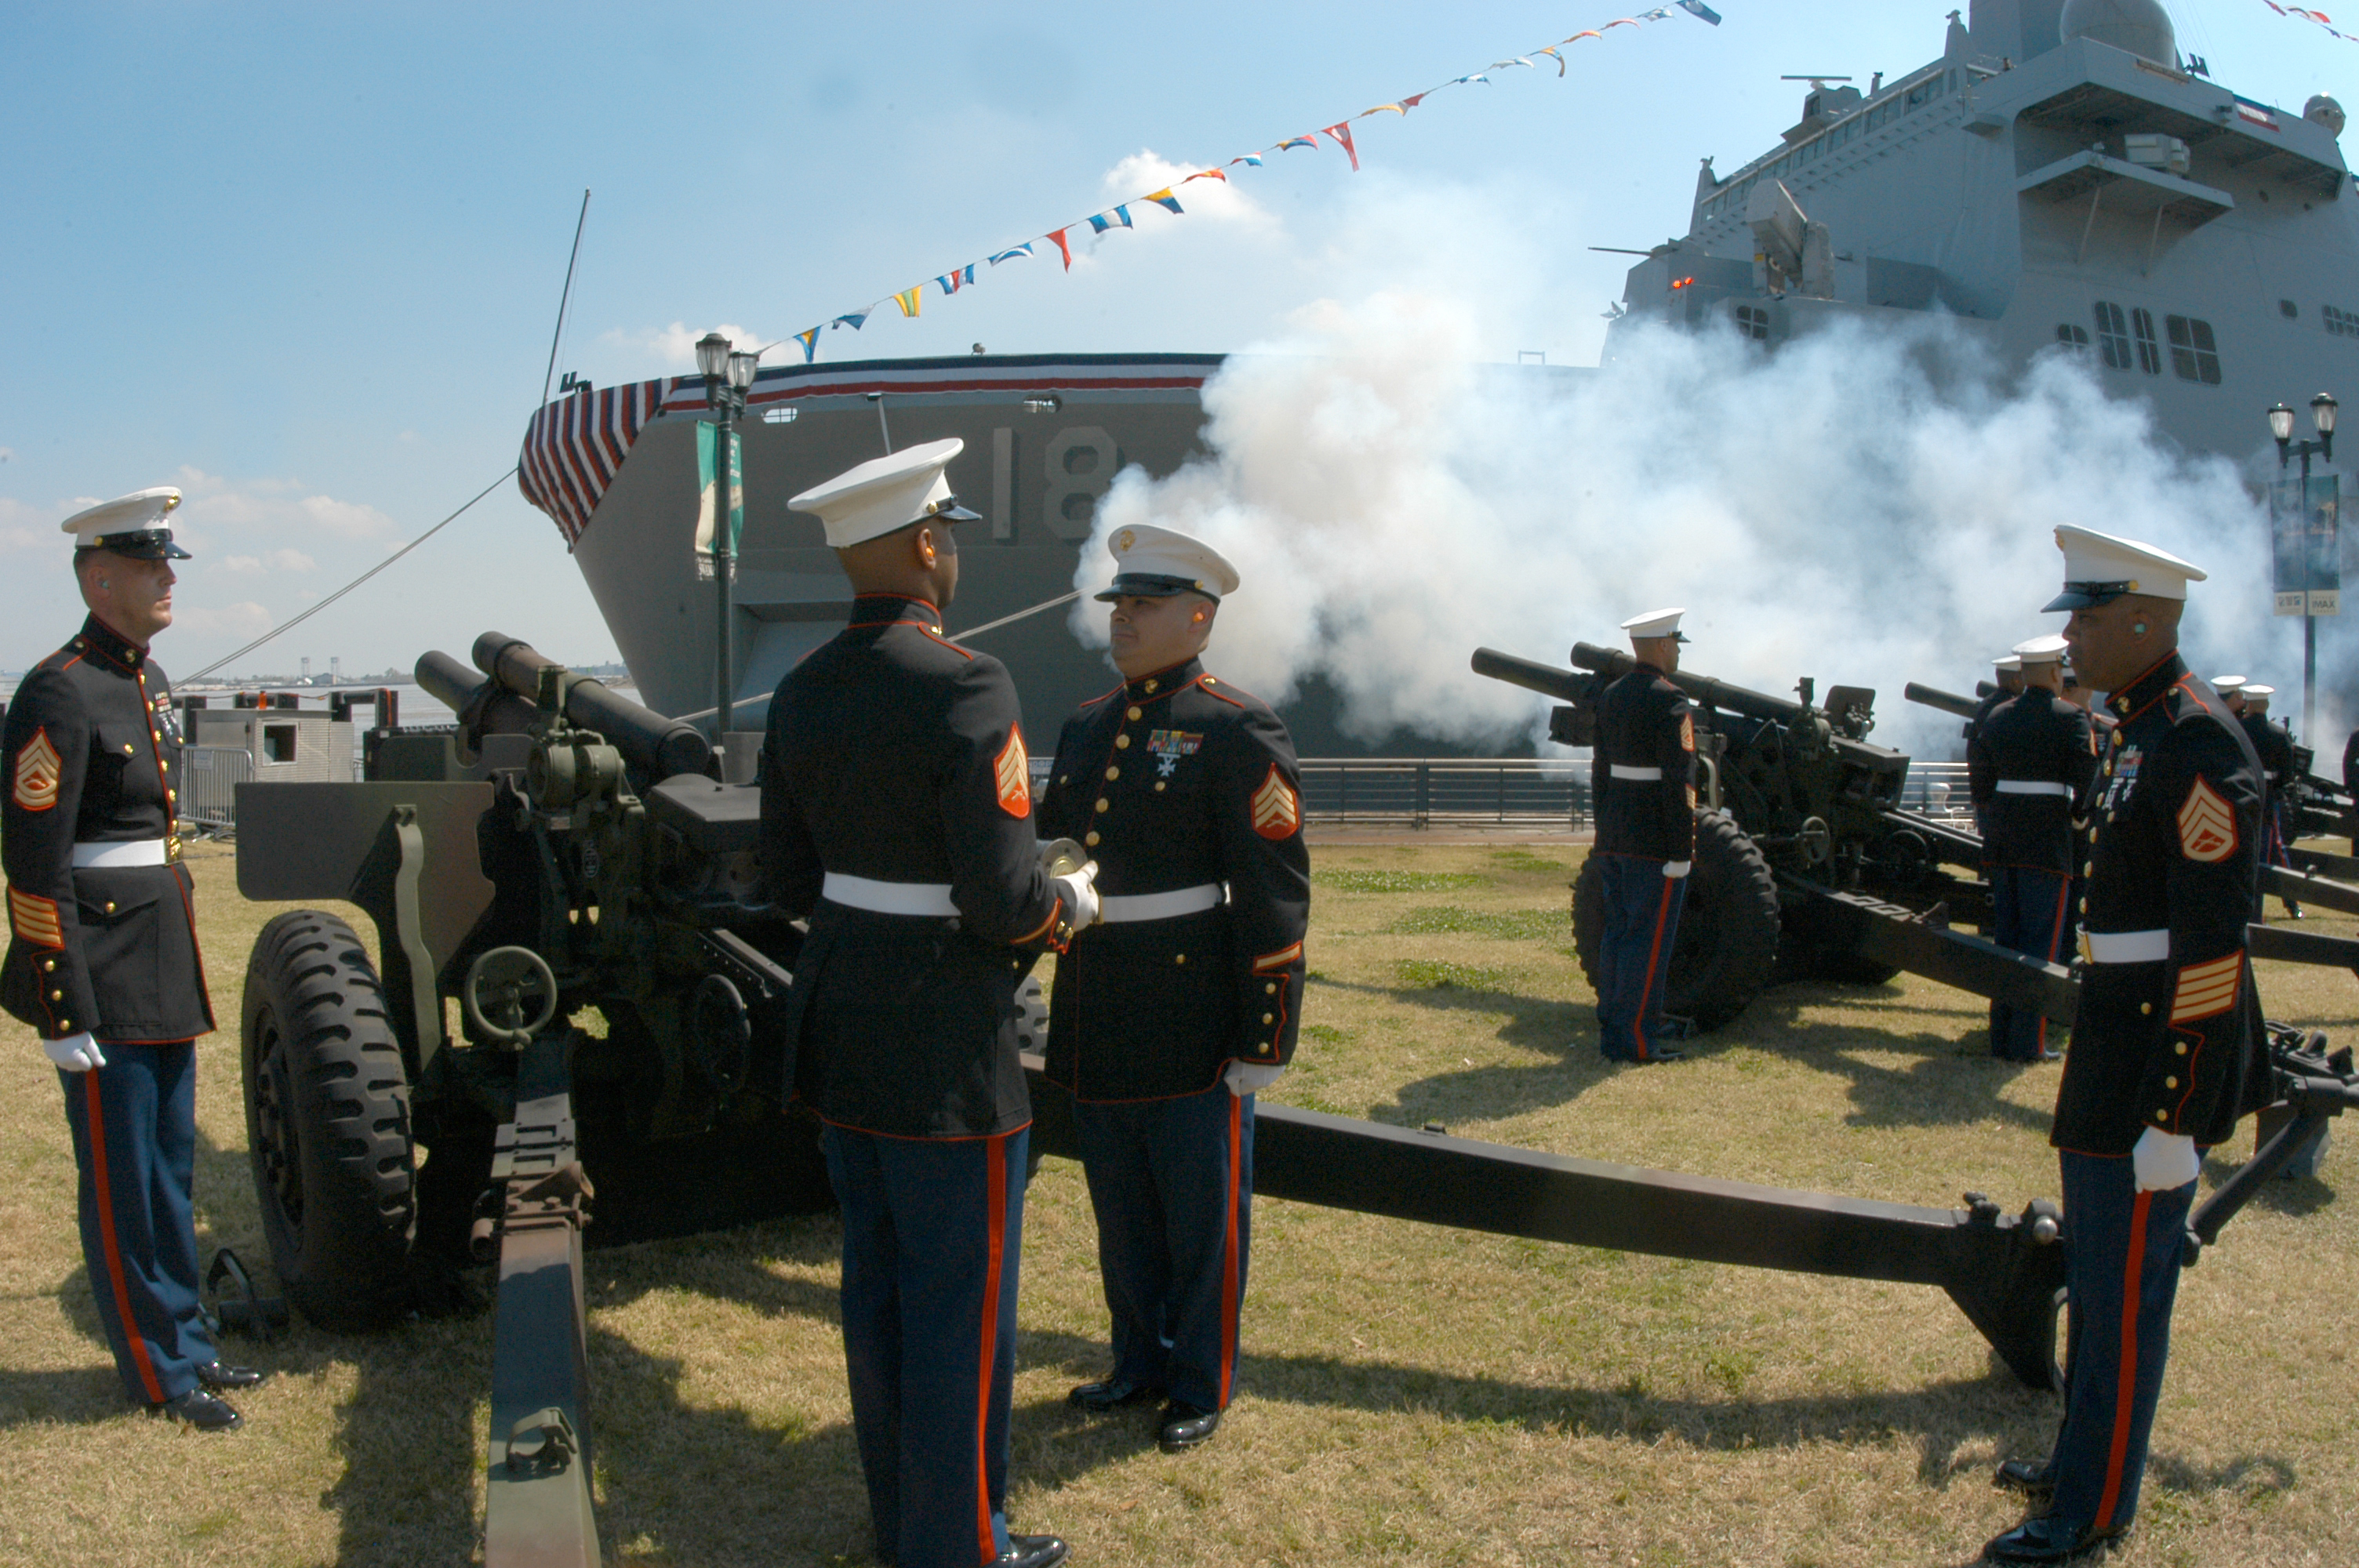 File:US Navy 070310-N-3429E-002 Marines from 14th Marine Artillery ...